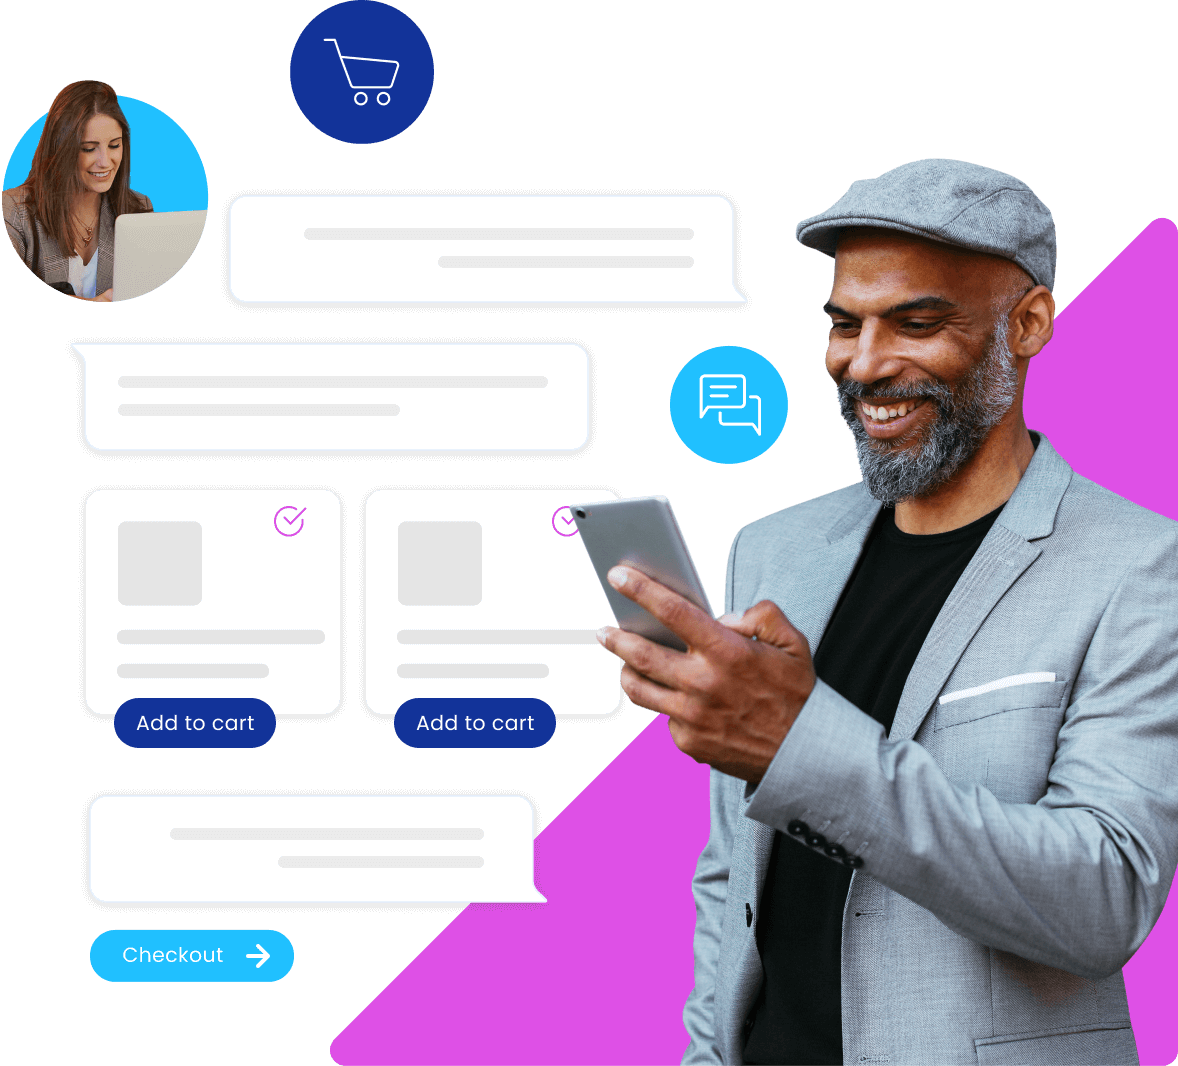 Connect with shoppers instantly with the help of acquire customer experience software for retail